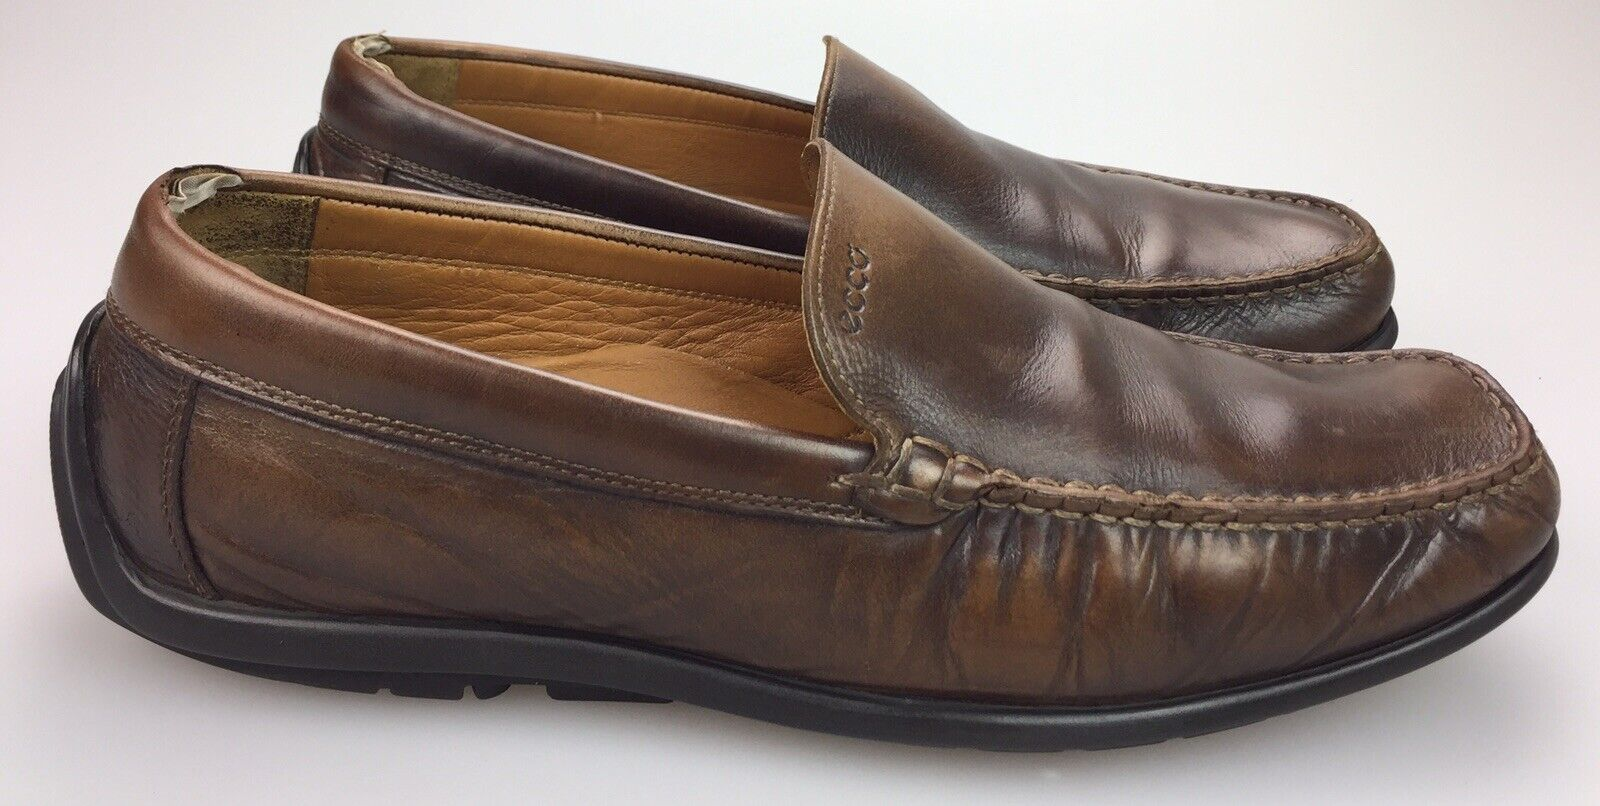 ECCO Brown Leather Moc Toe Casual Driving Loafers shoes Men's 45   11-11.5